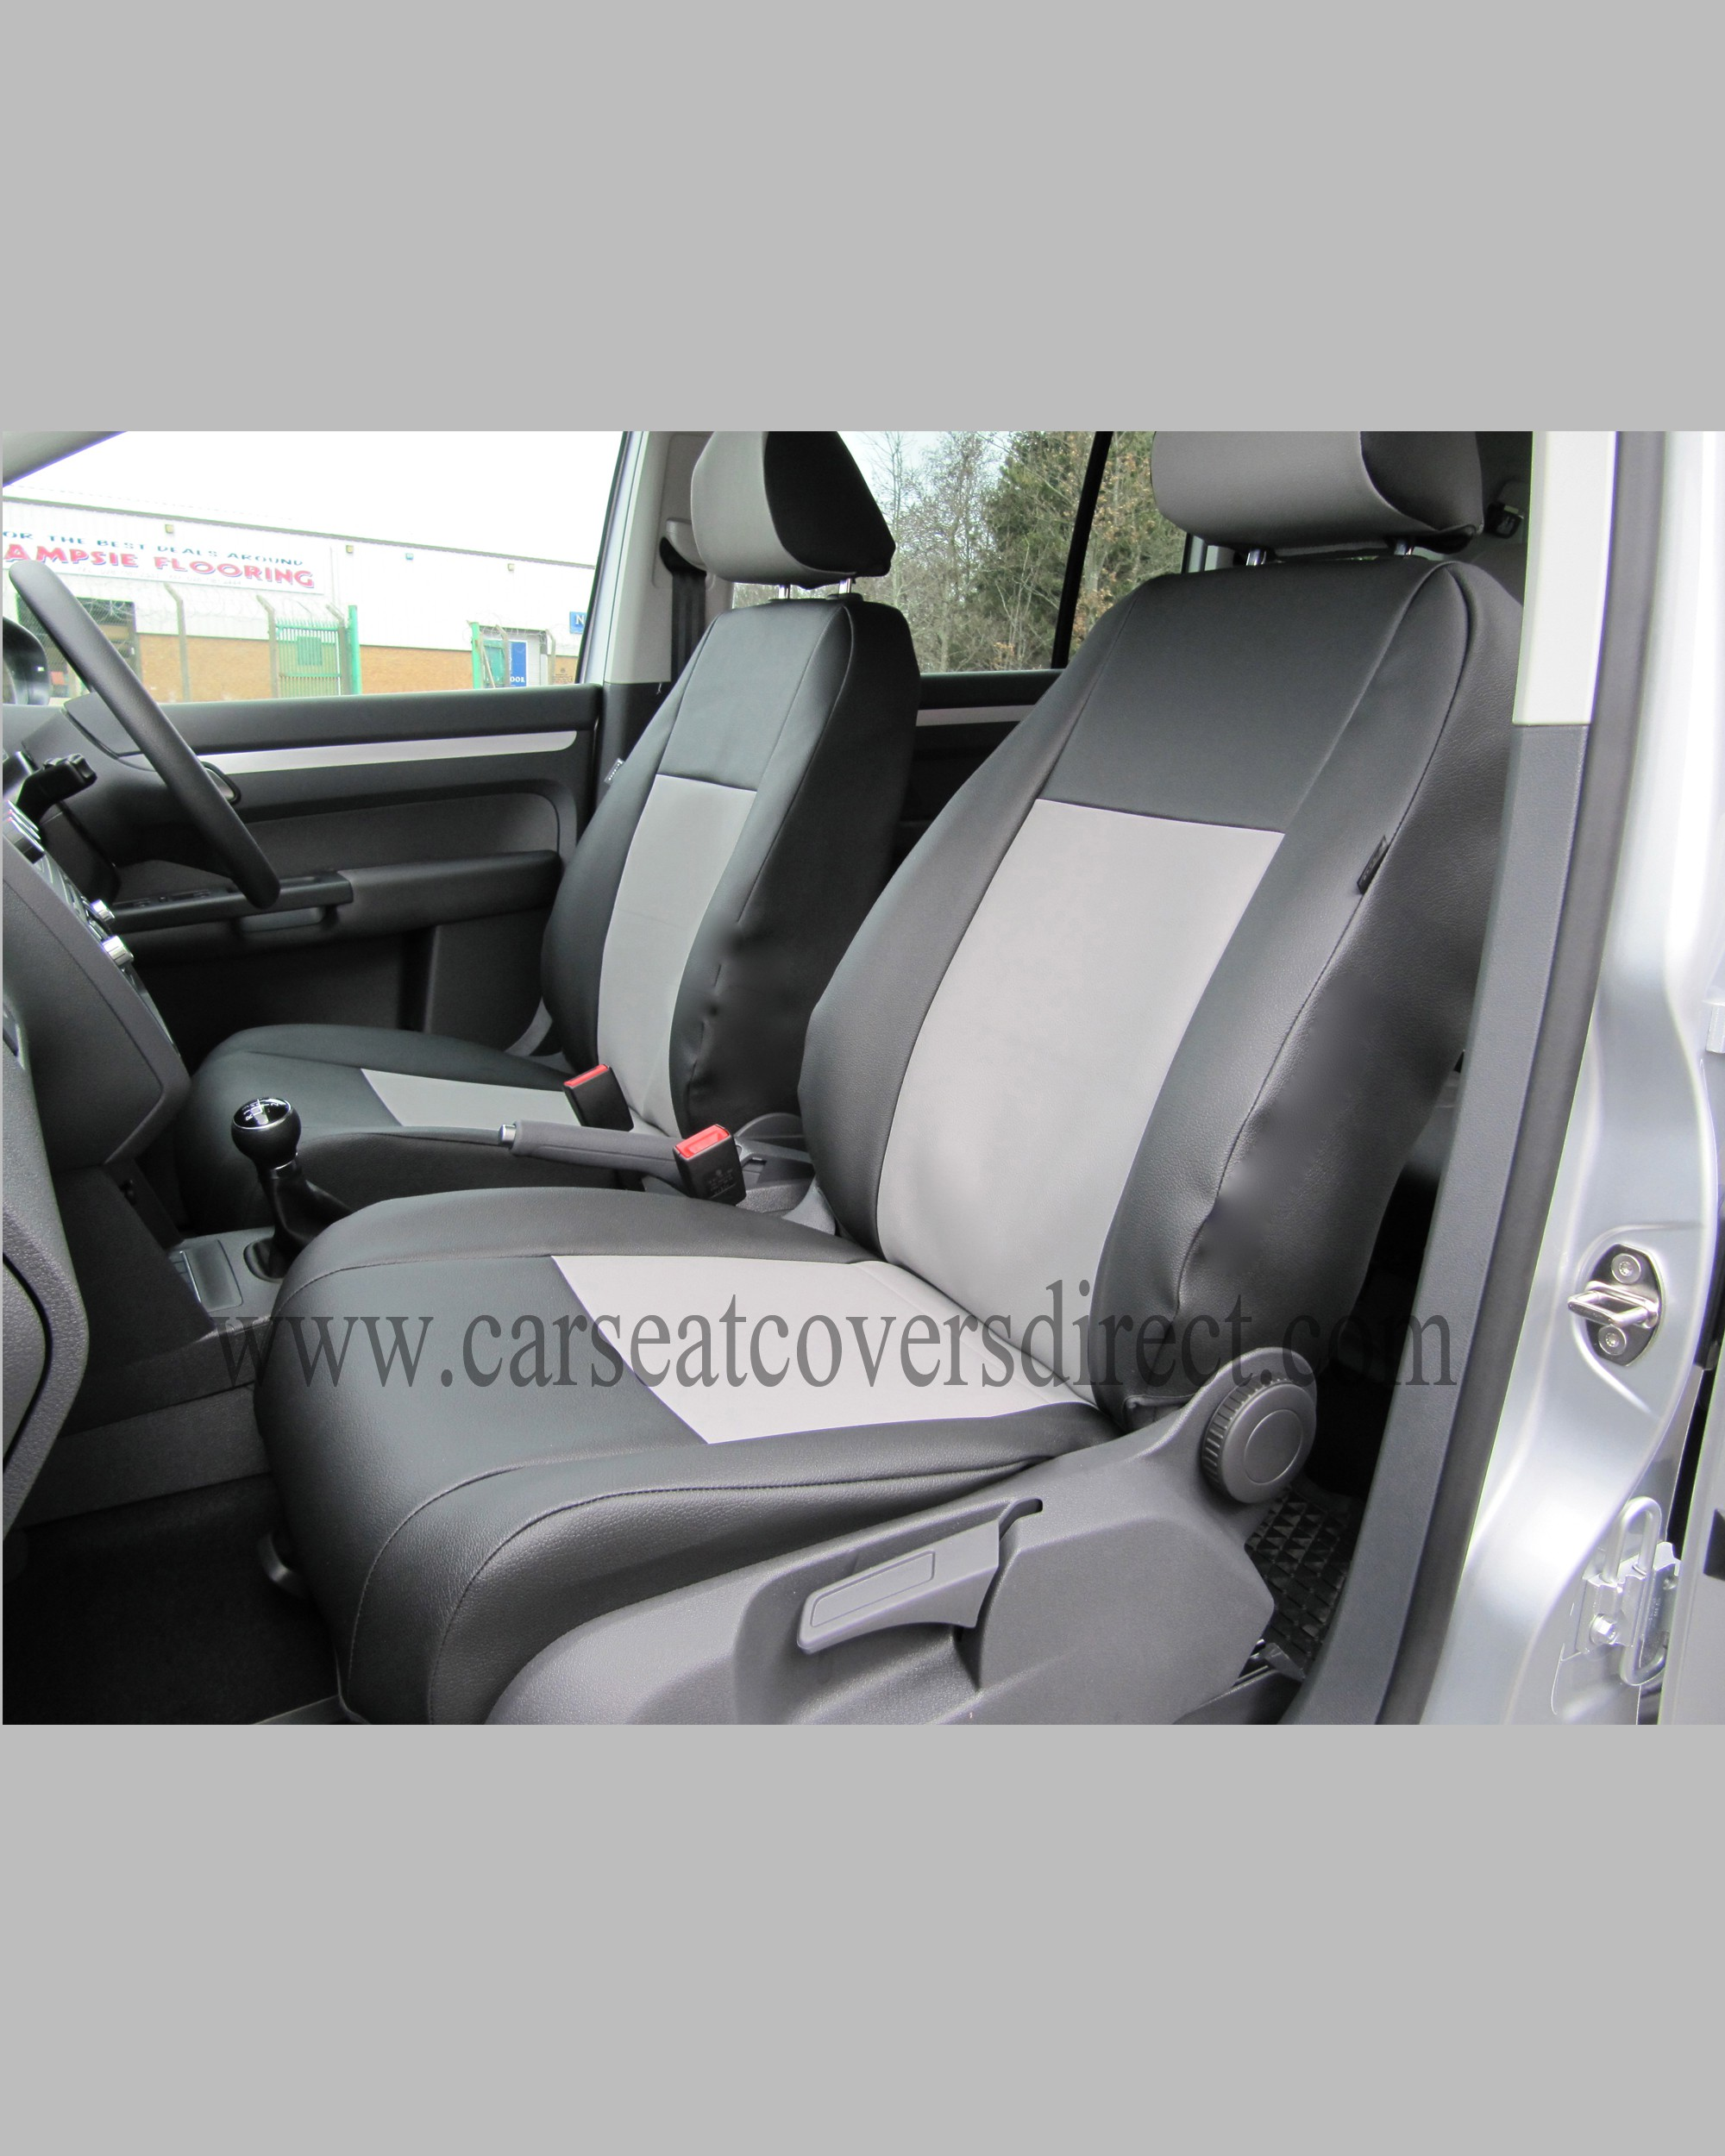 volkswagen vw touran black grey seat covers 7 seats car seat covers direct tailored to. Black Bedroom Furniture Sets. Home Design Ideas